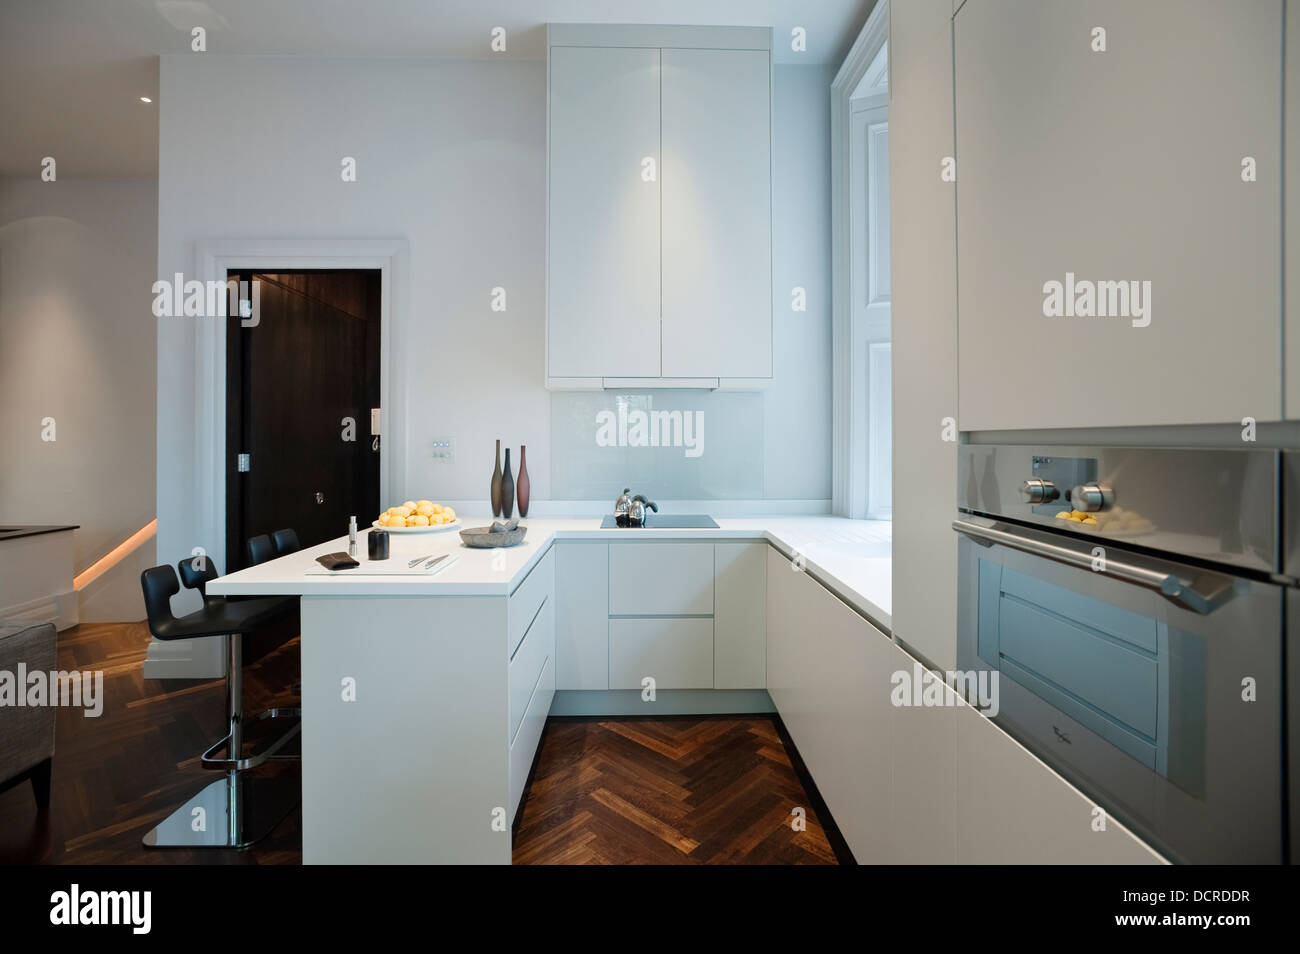 Integral Oven Stock Photos & Integral Oven Stock Images - Alamy